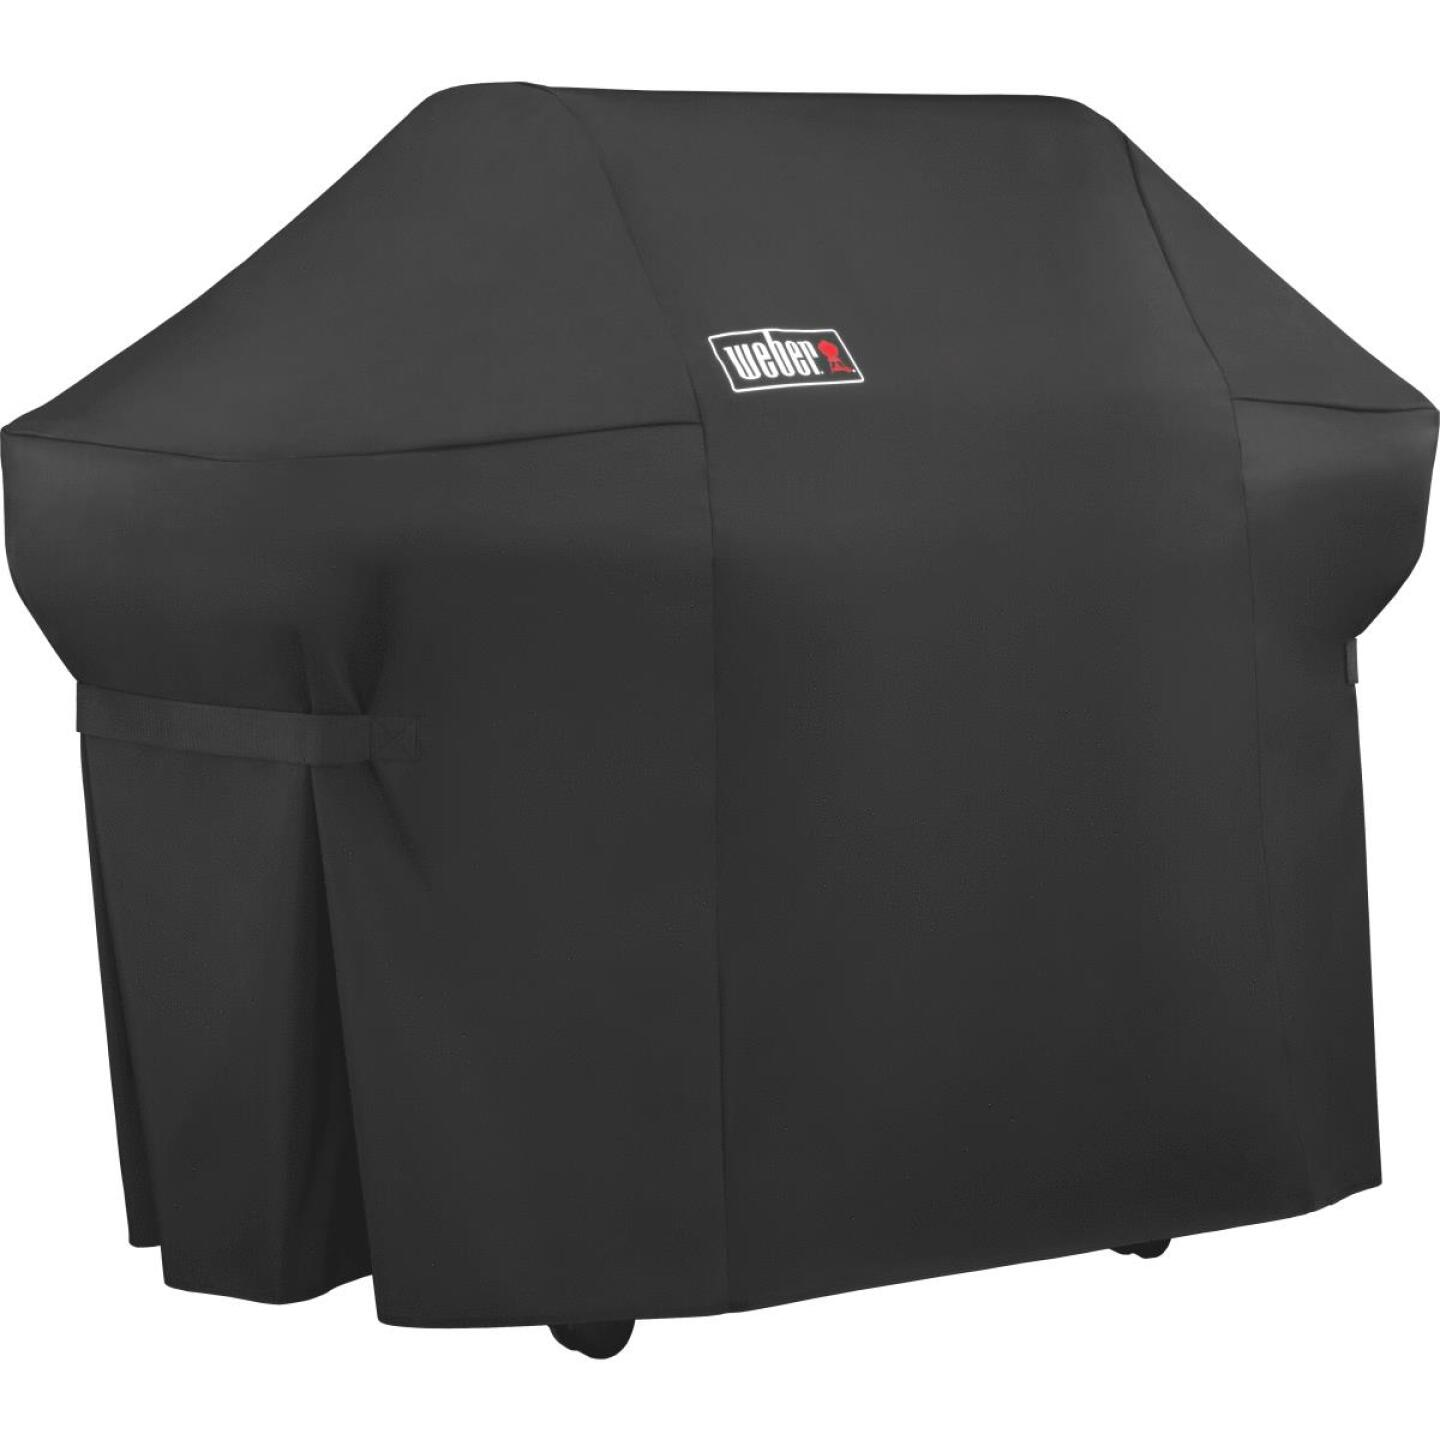 Weber Summit 400S Premium 67 In. Black Polyester Grill Cover Image 1